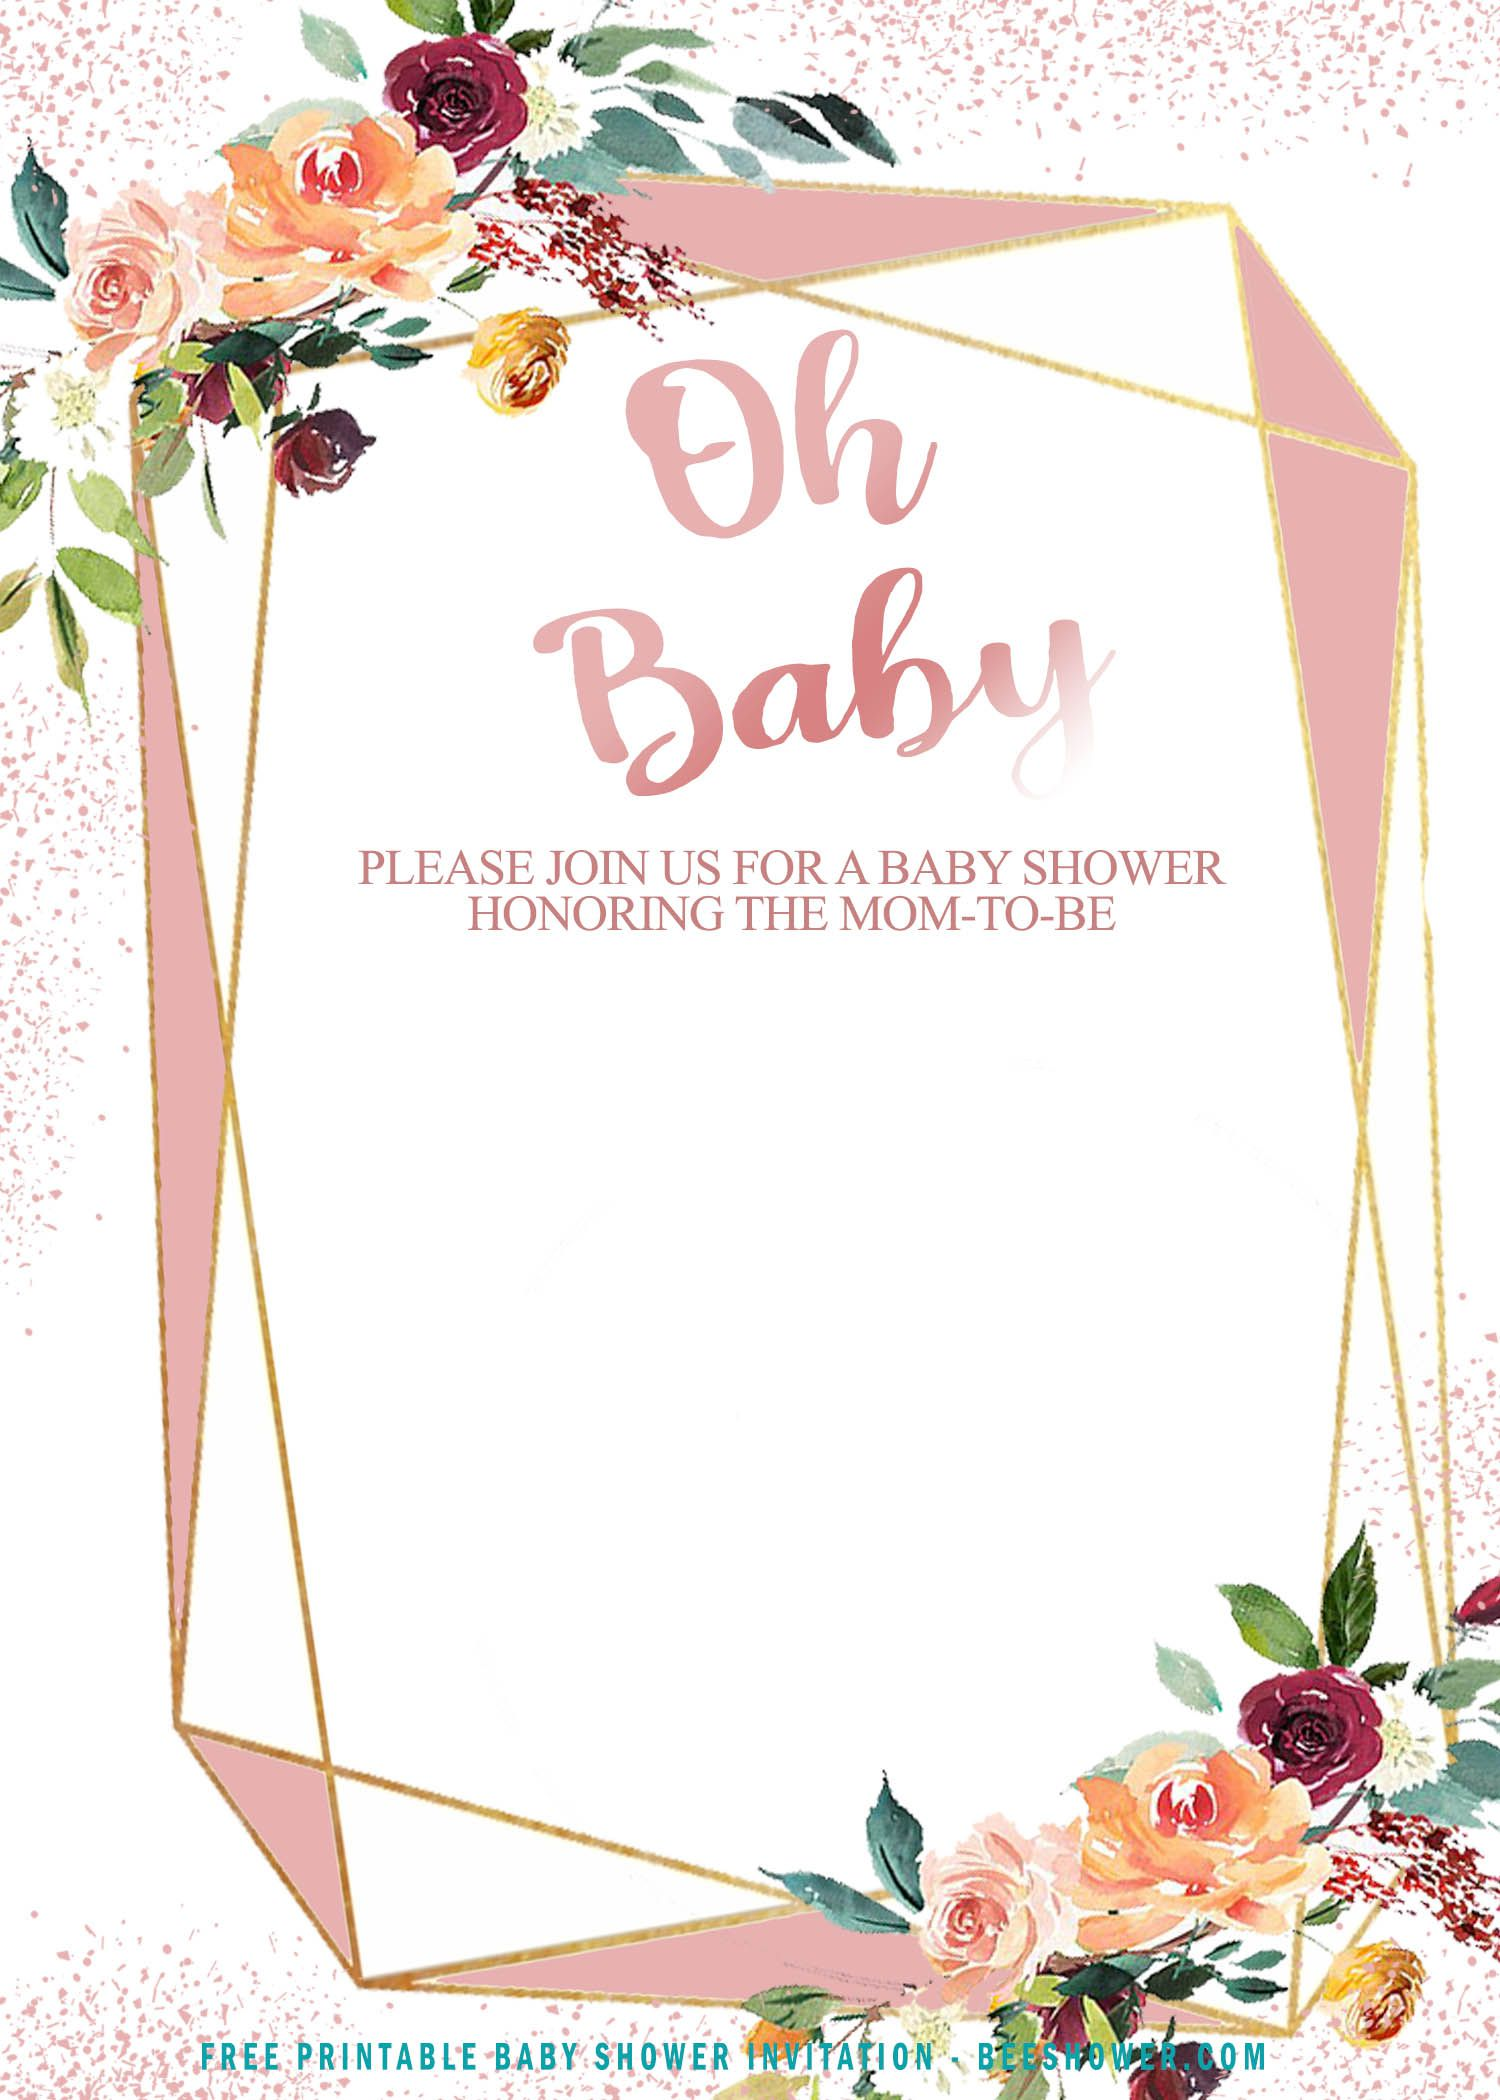 009 Impressive Baby Shower Invitation Template Word Idea  Office Wording Sample Work DownloadFull